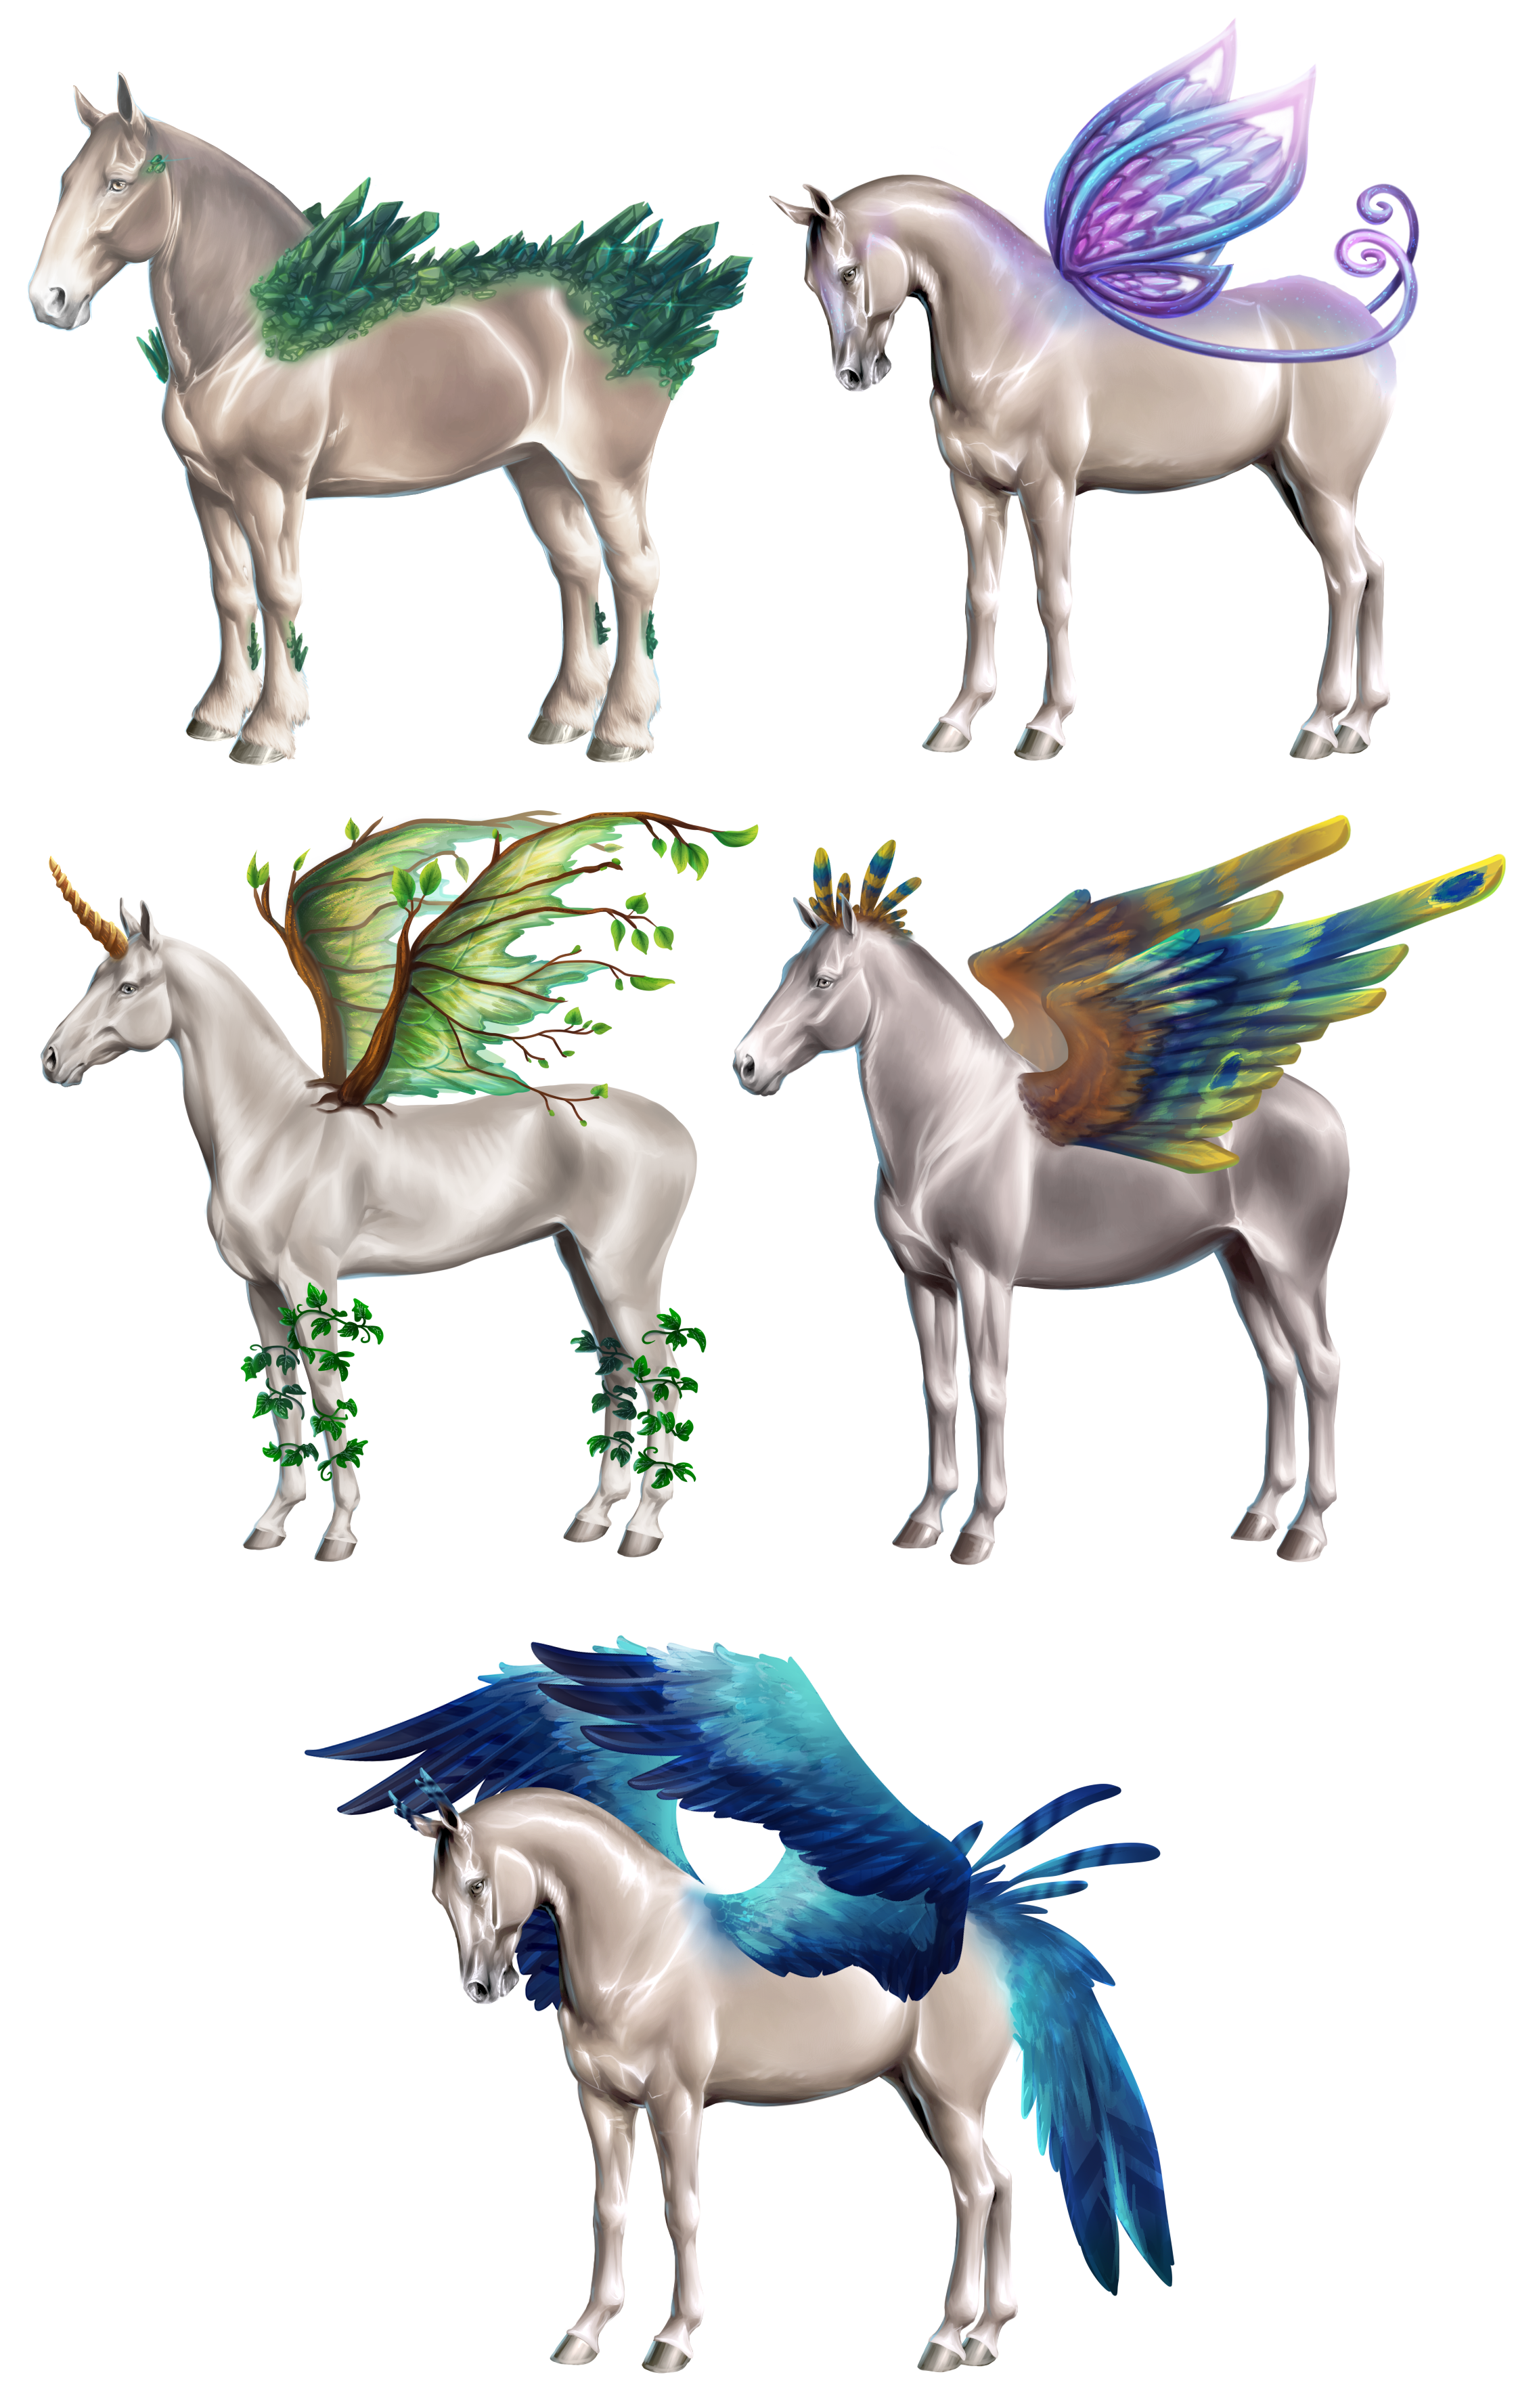 Horse genetics. Must be able to fit all horse breed bases with minimal edits. **Horse bases not by me